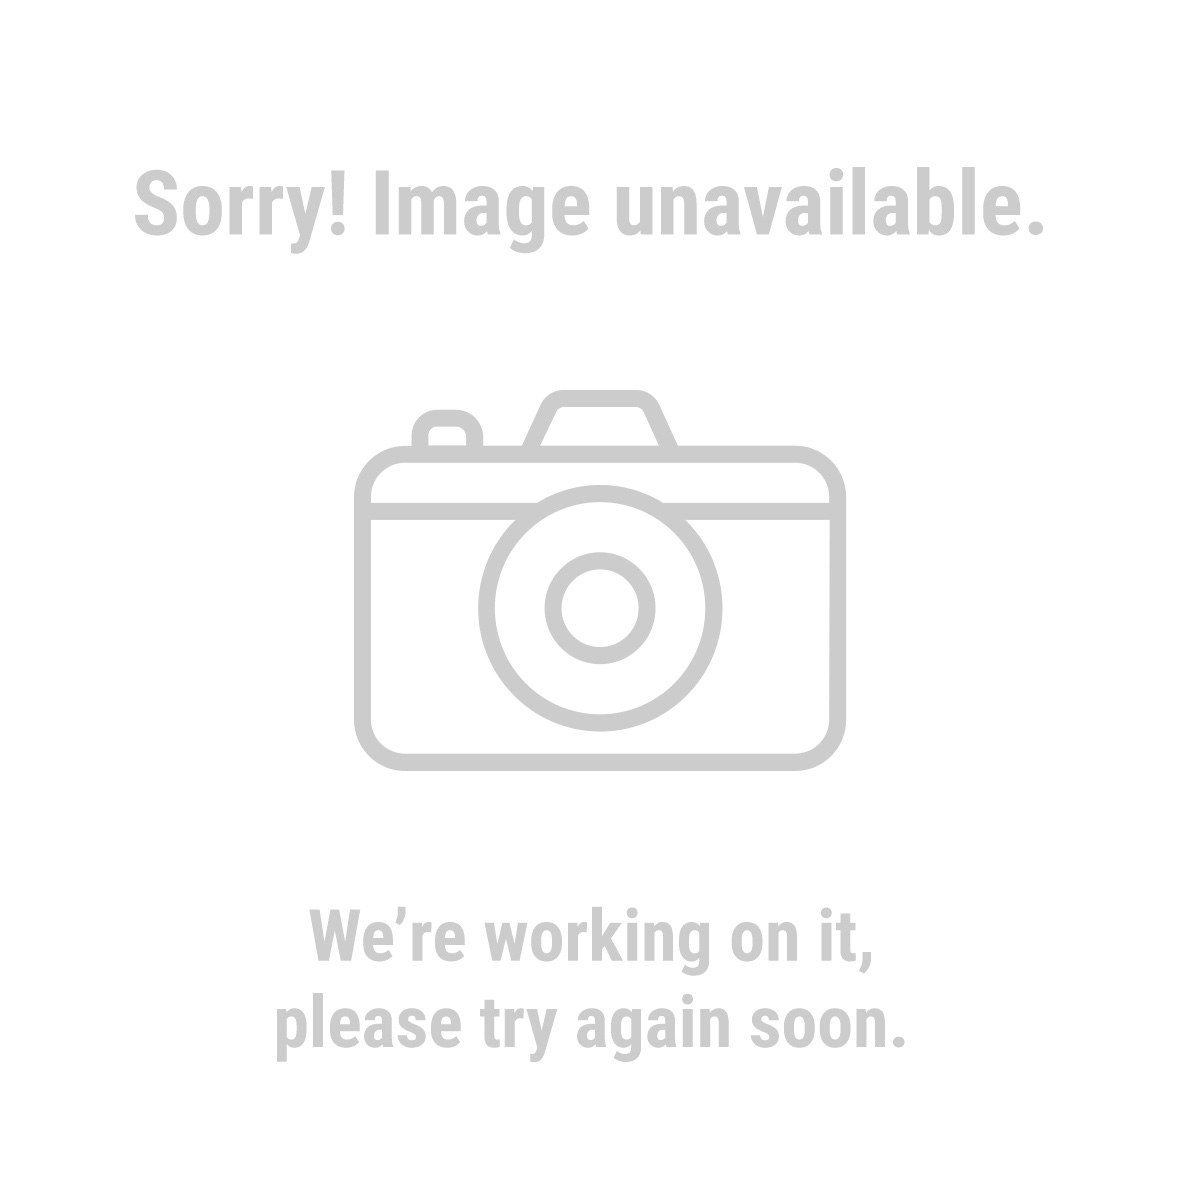 Chicago Electric Power Tools 62296 4 in. Handheld Dry-Cut Tile Saw